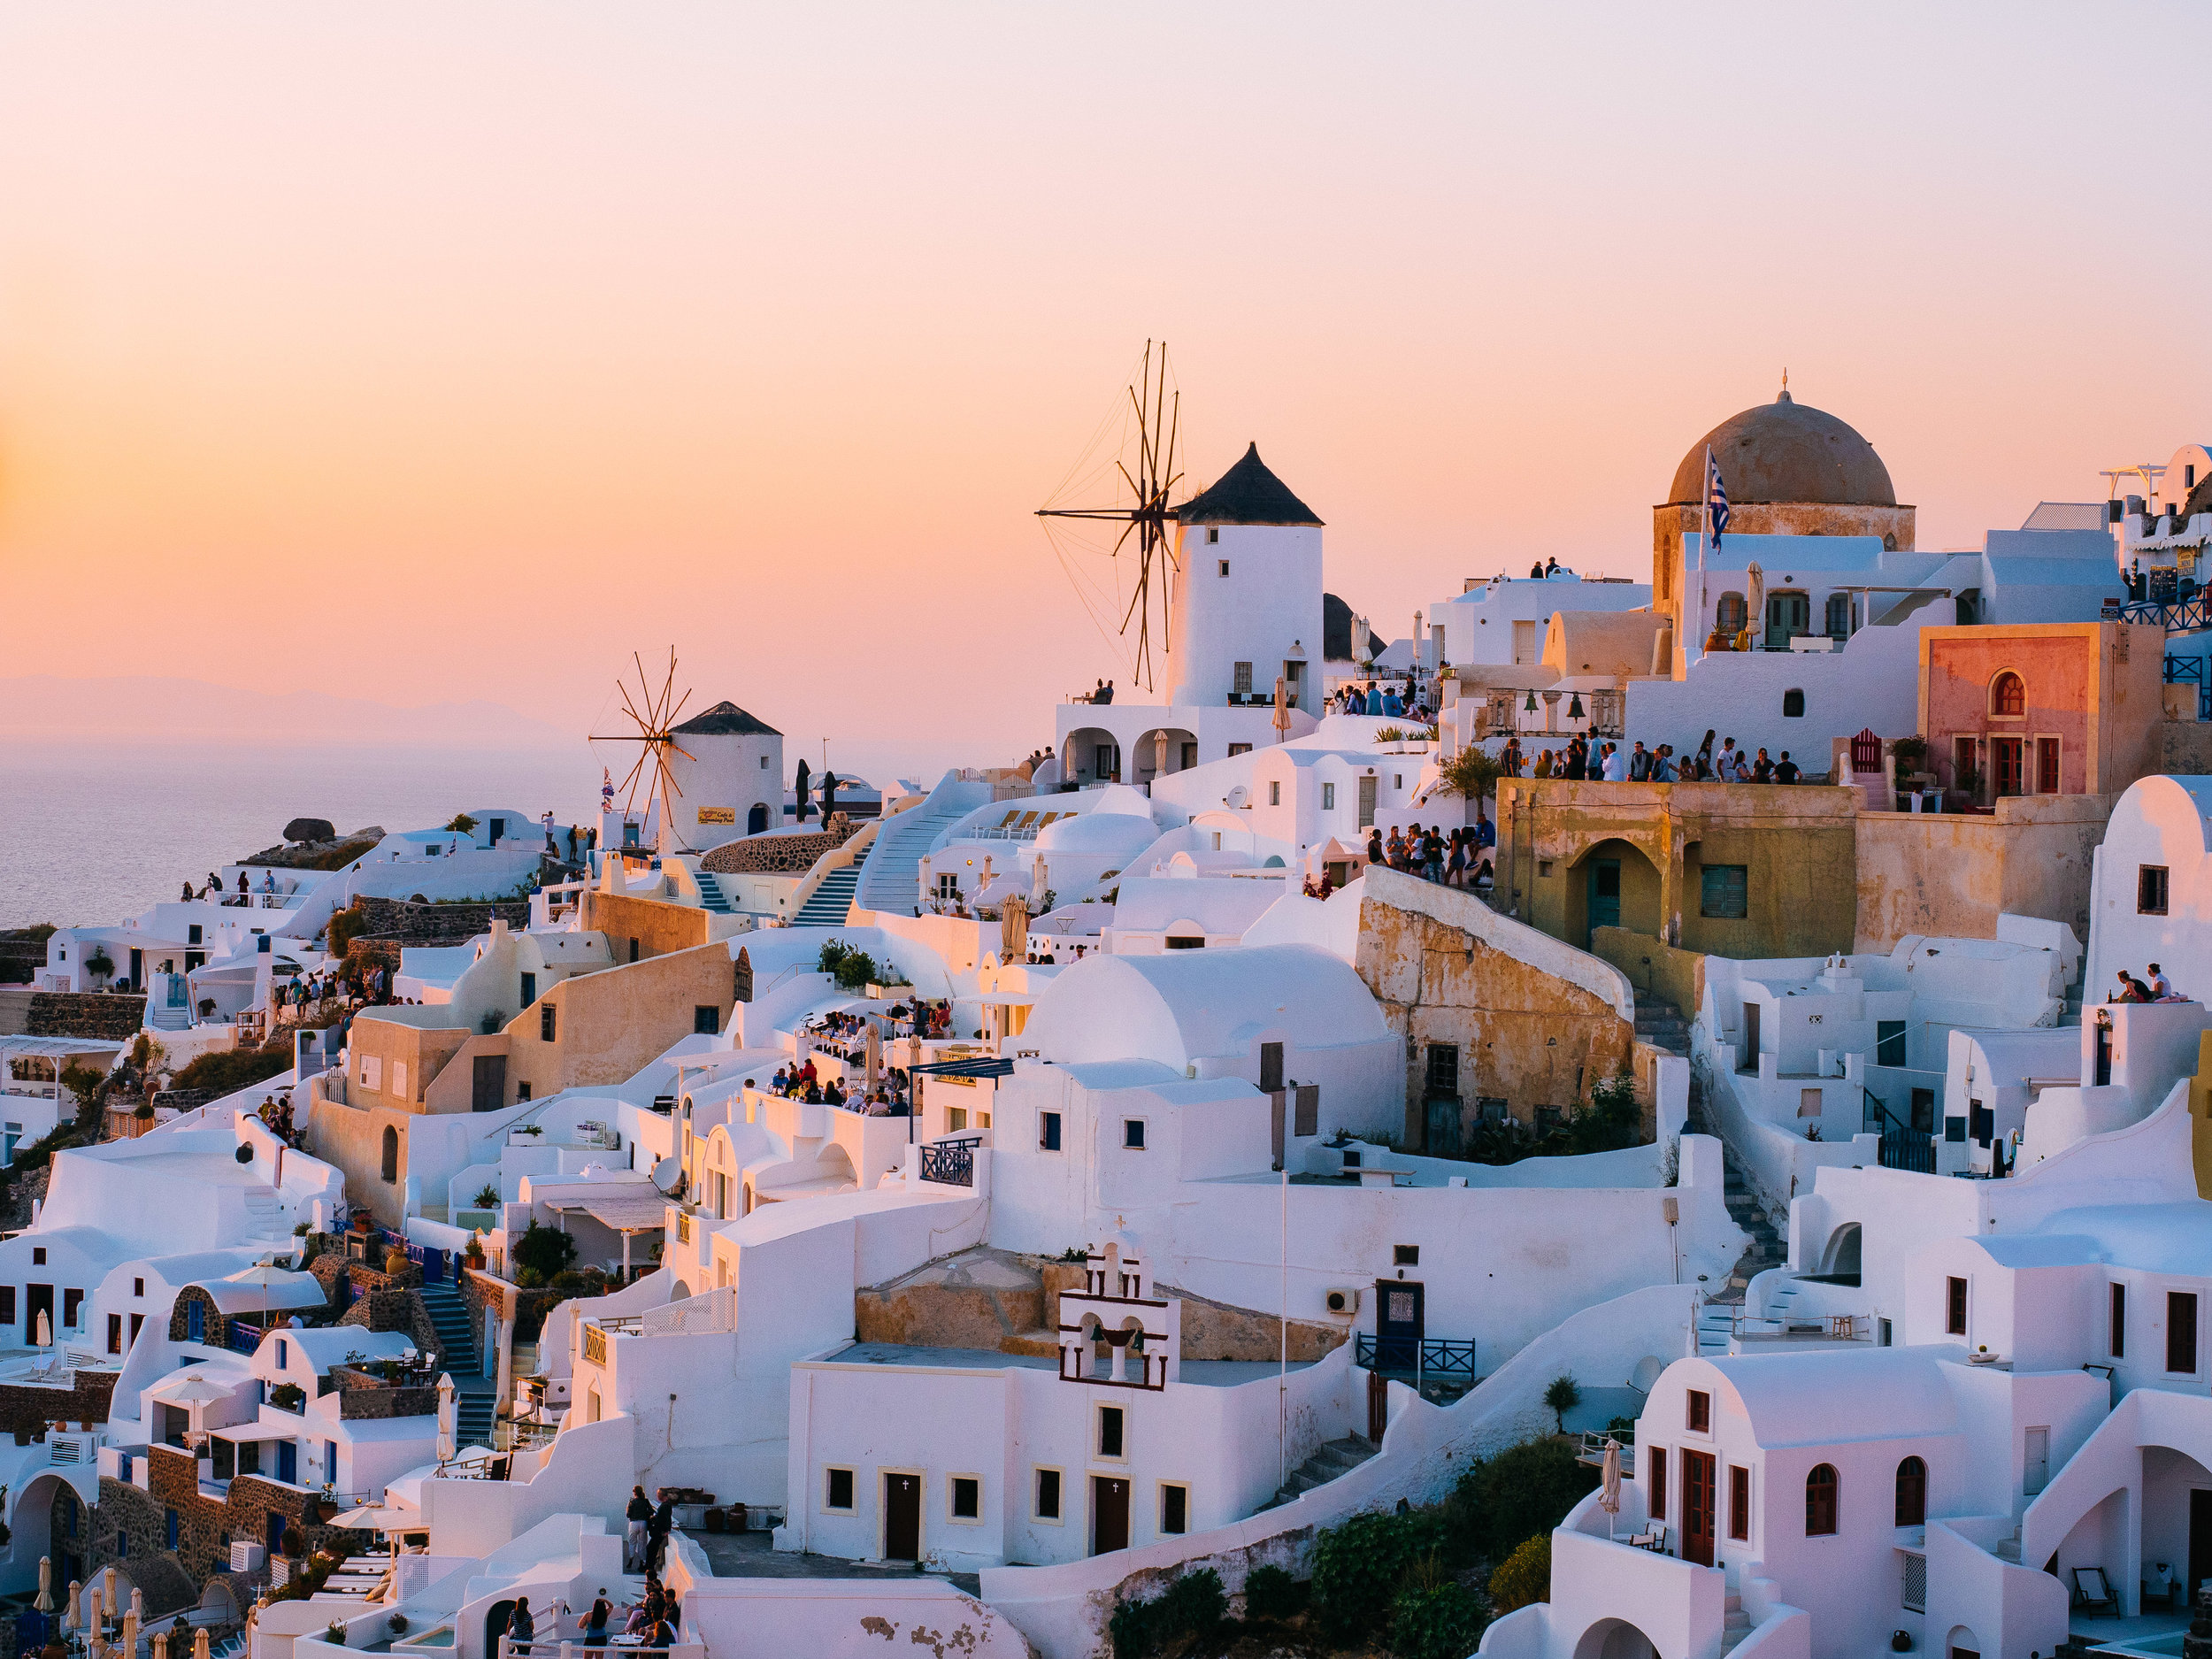 Santorini, the world-renowned destination, can appear overwhelming without prior research. Check out our must-see guide and discover the beauty of the most famous Greek island. Photo source: Unsplash